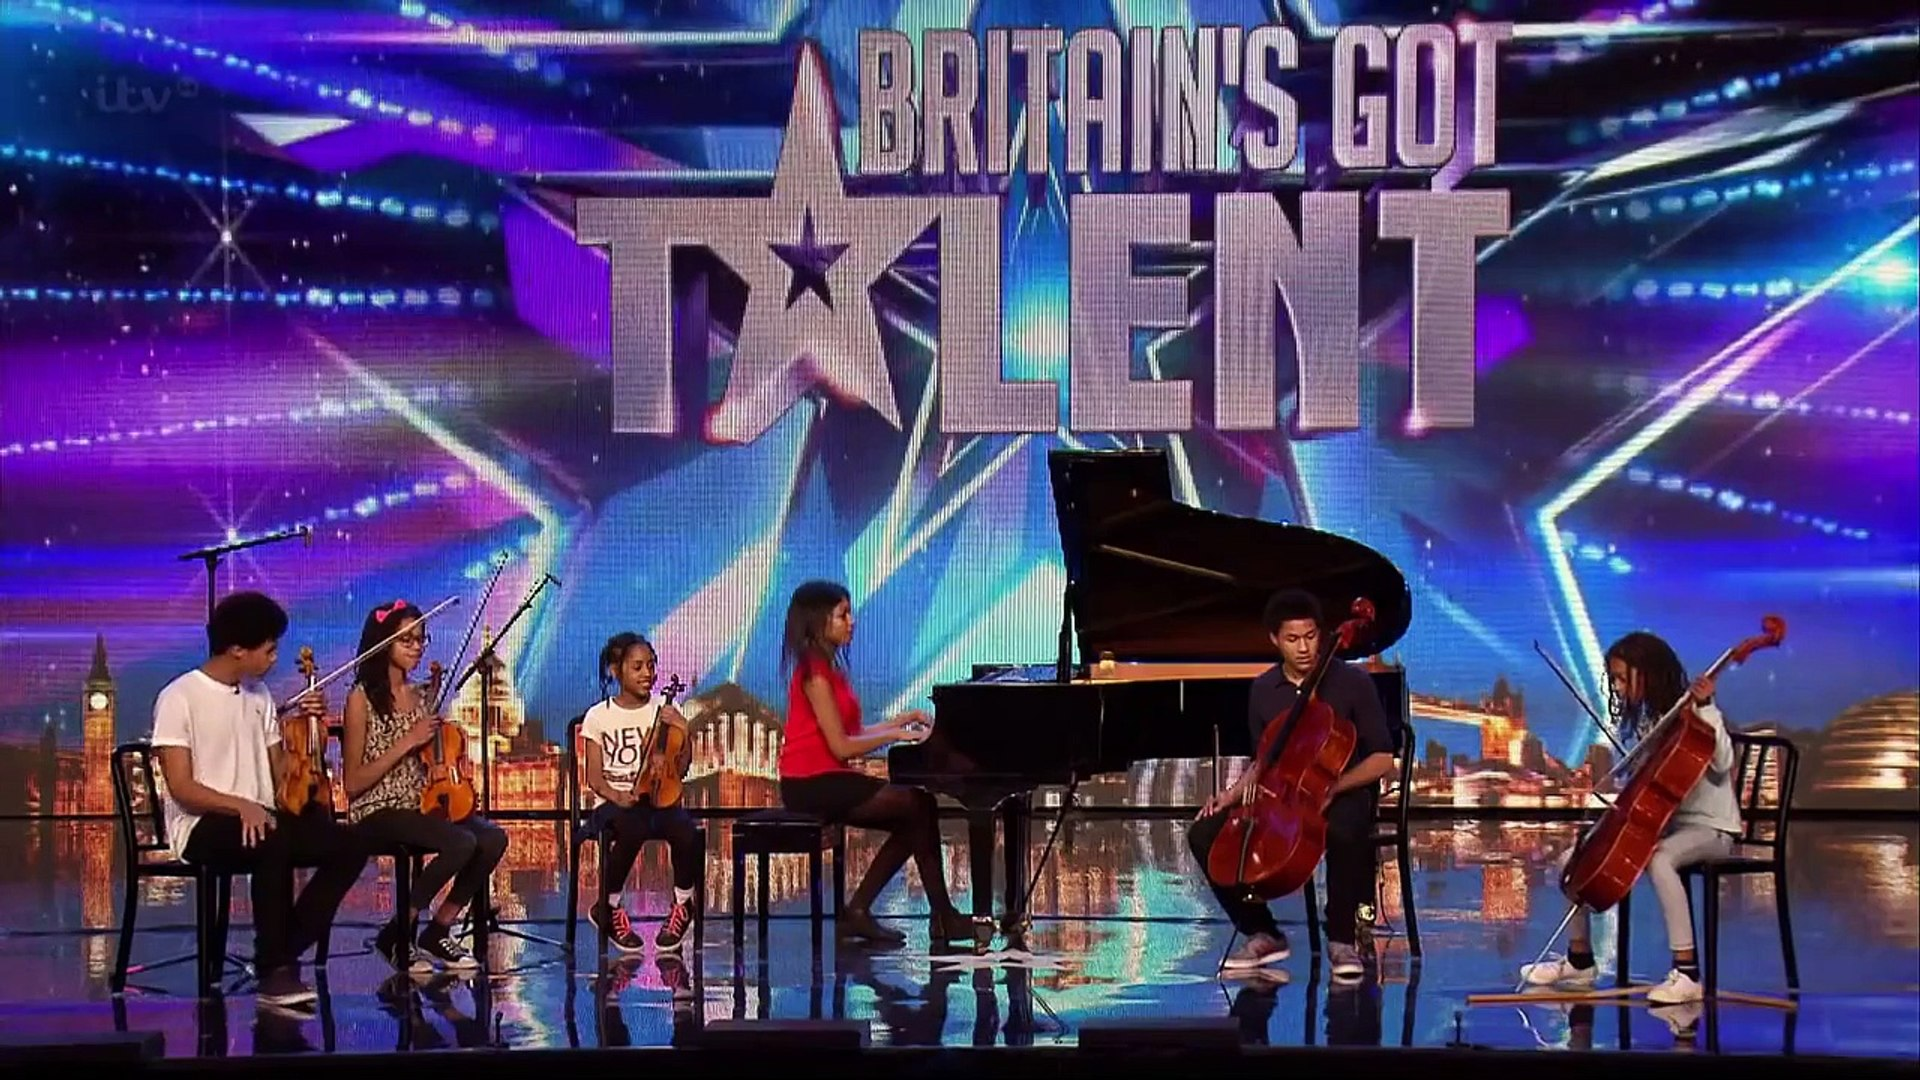 Britains Got Talent 2015 S09E07 The Kanneh Masons Six Piece Family Classical Orchestra